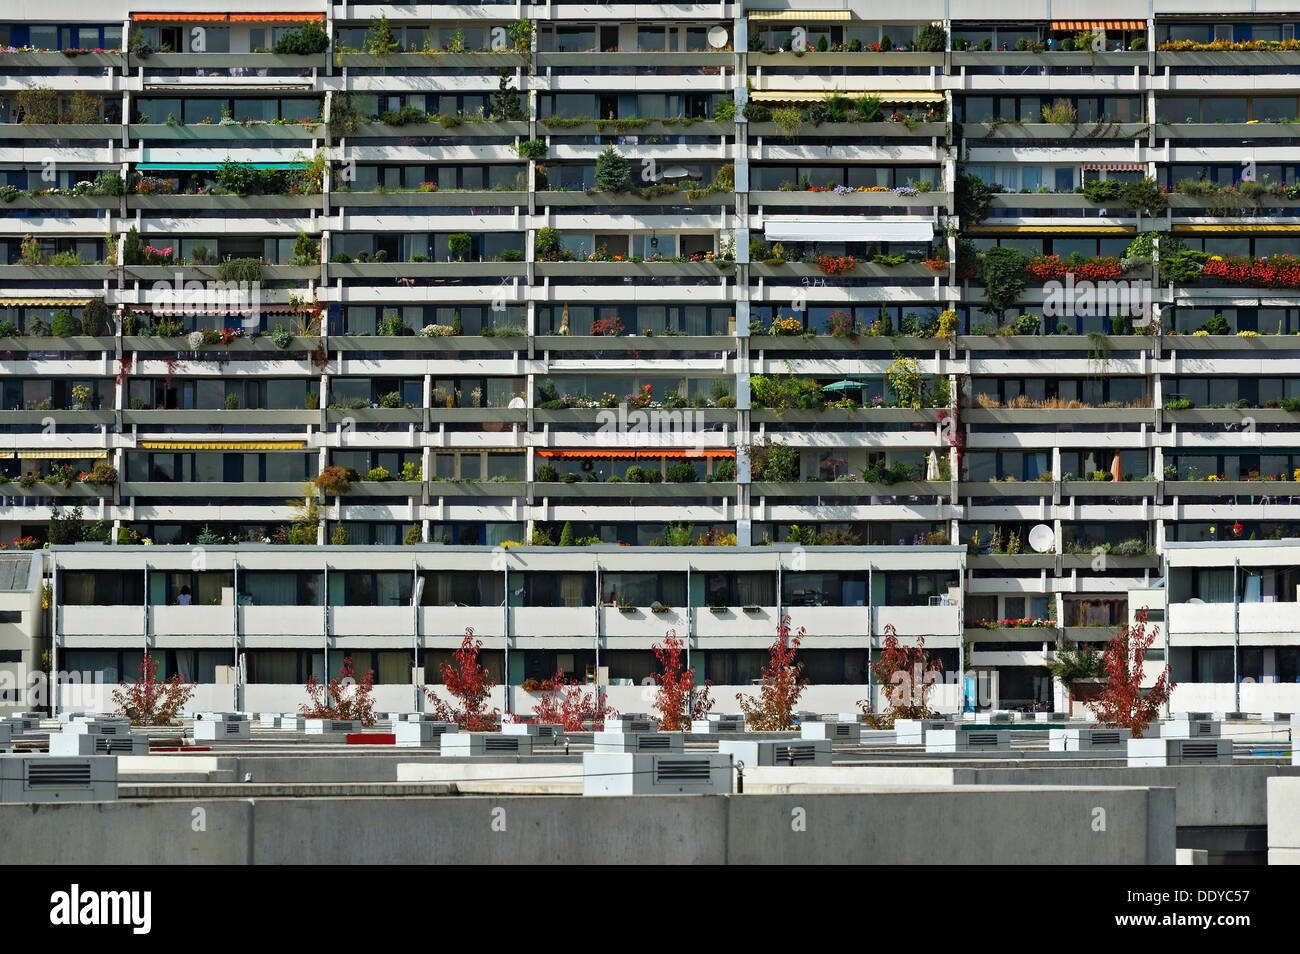 Concrete balconies with plants in the former Olympic Village, Munich, Bavaria - Stock Image